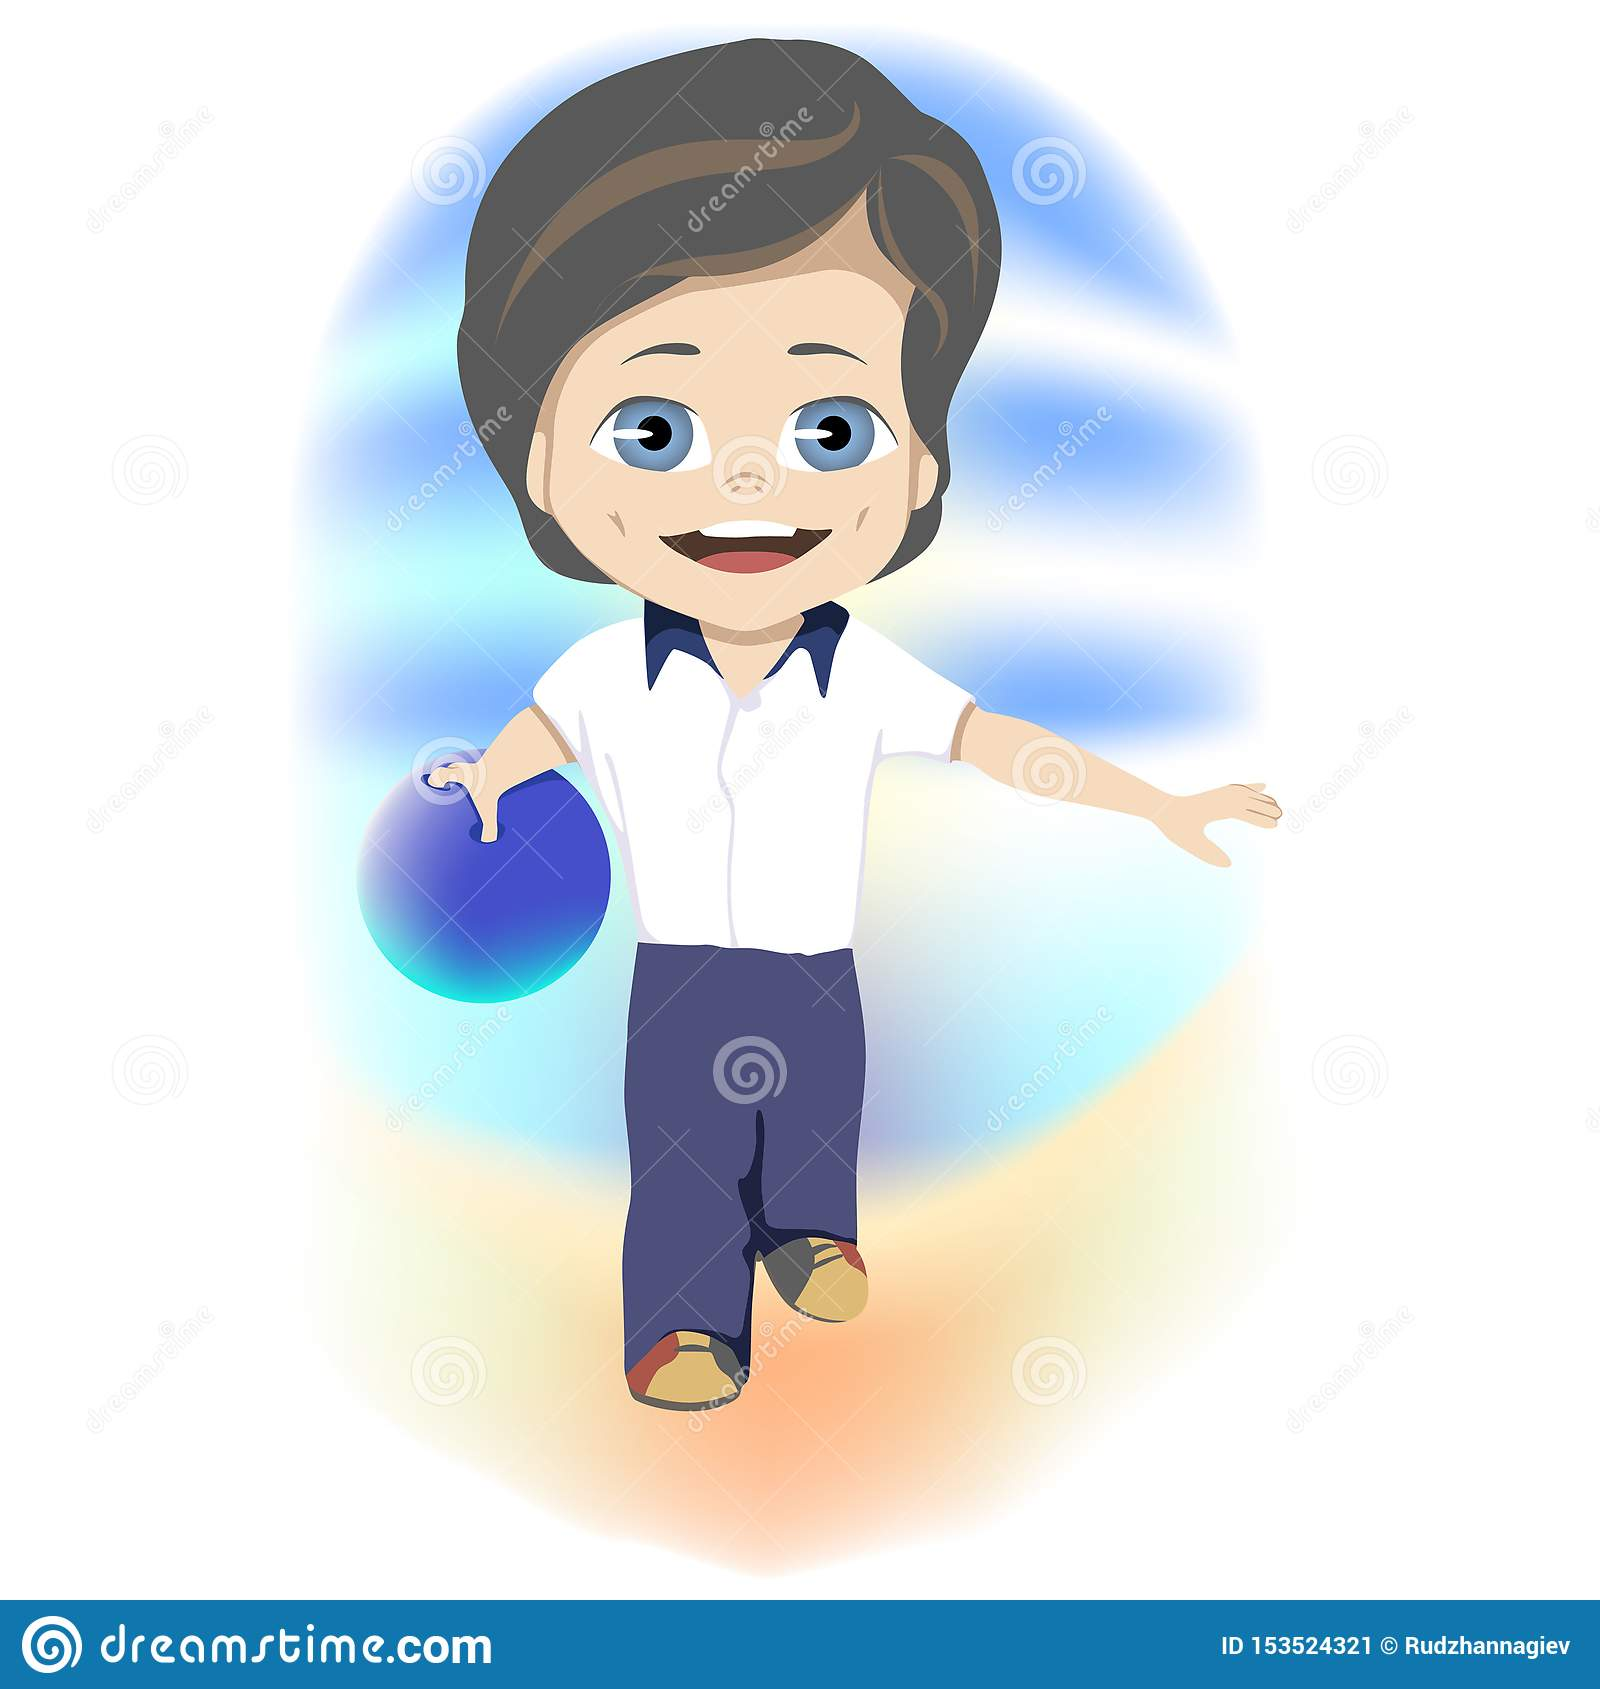 Happy childhood concept. Smart young boy playing a game of bowls during his summer vacation in a concept of recreational